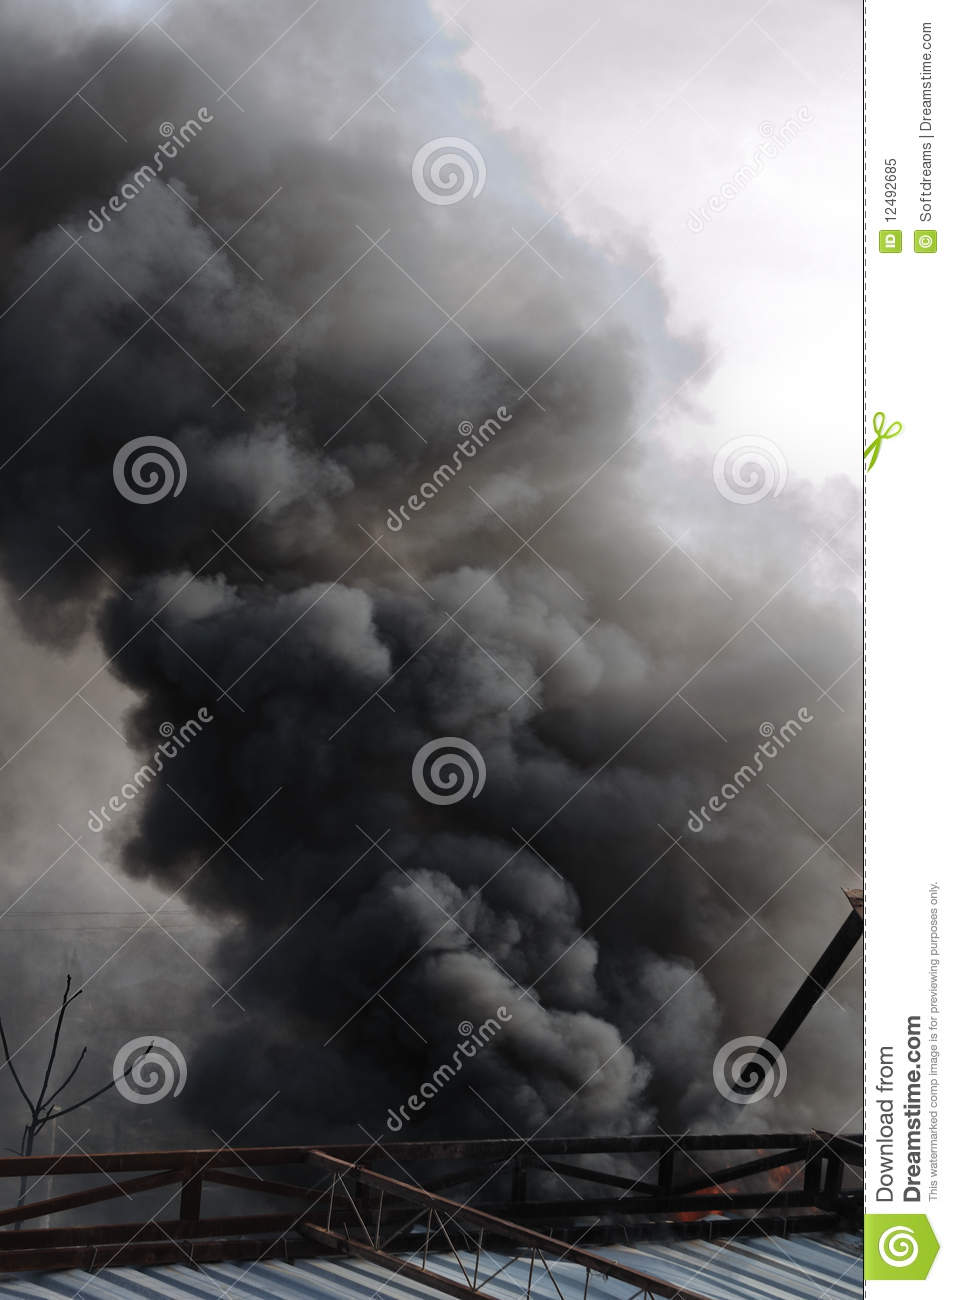 Smoke Plume Royalty Free Stock Photo   Image  12492685